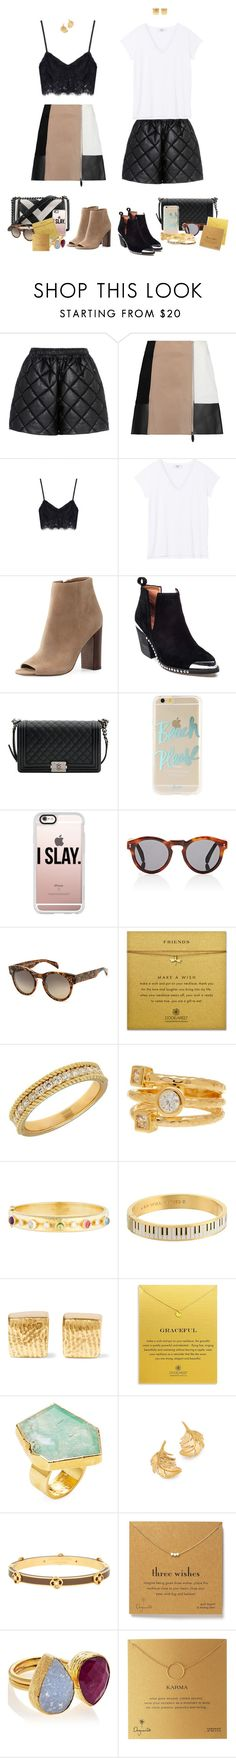 """""""Well well well..."""" by audrey-balt ❤ liked on Polyvore featuring STELLA McCARTNEY, Alexander Wang, Sam Edelman, Jeffrey Campbell, Chanel, Sonix, Casetify, Illesteva, SALT. and Lord & Taylor"""